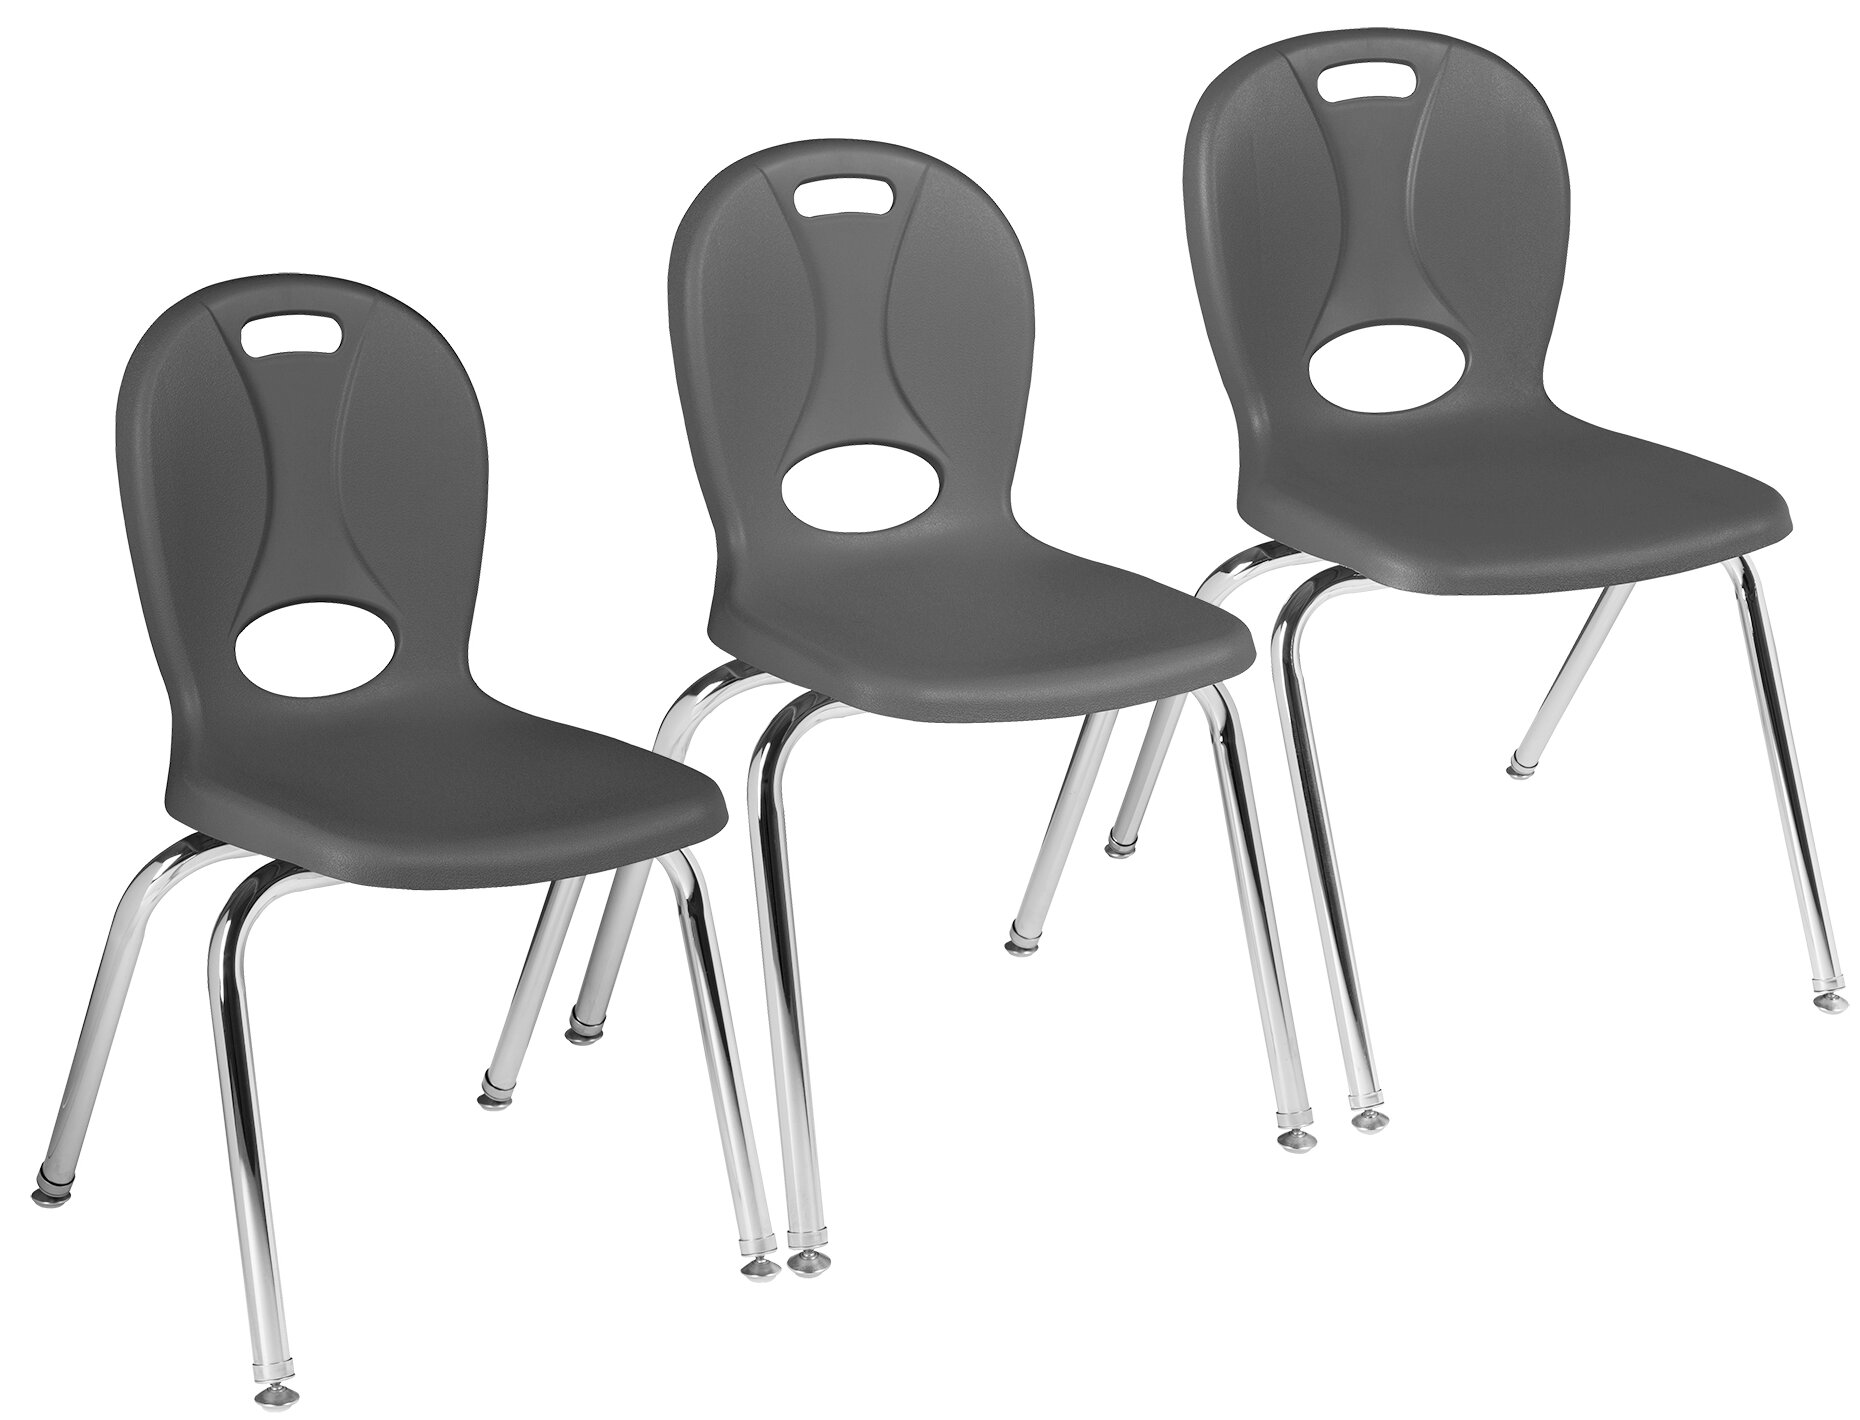 Navy//Silver Set of 4 Lorell Classroom Student Stack Chairs 18H Seat